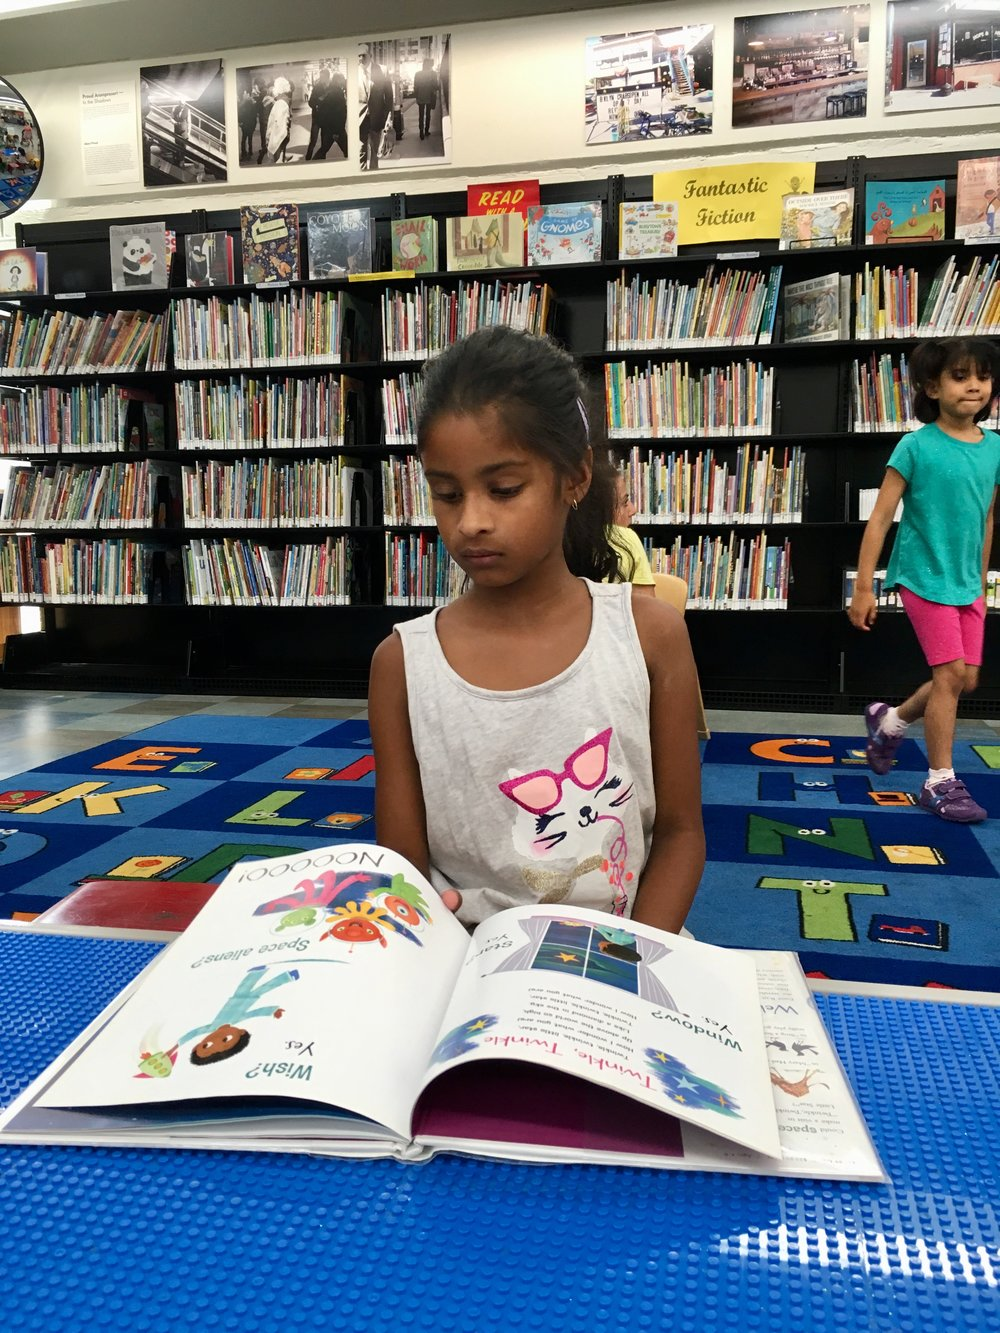 Reading at the library.